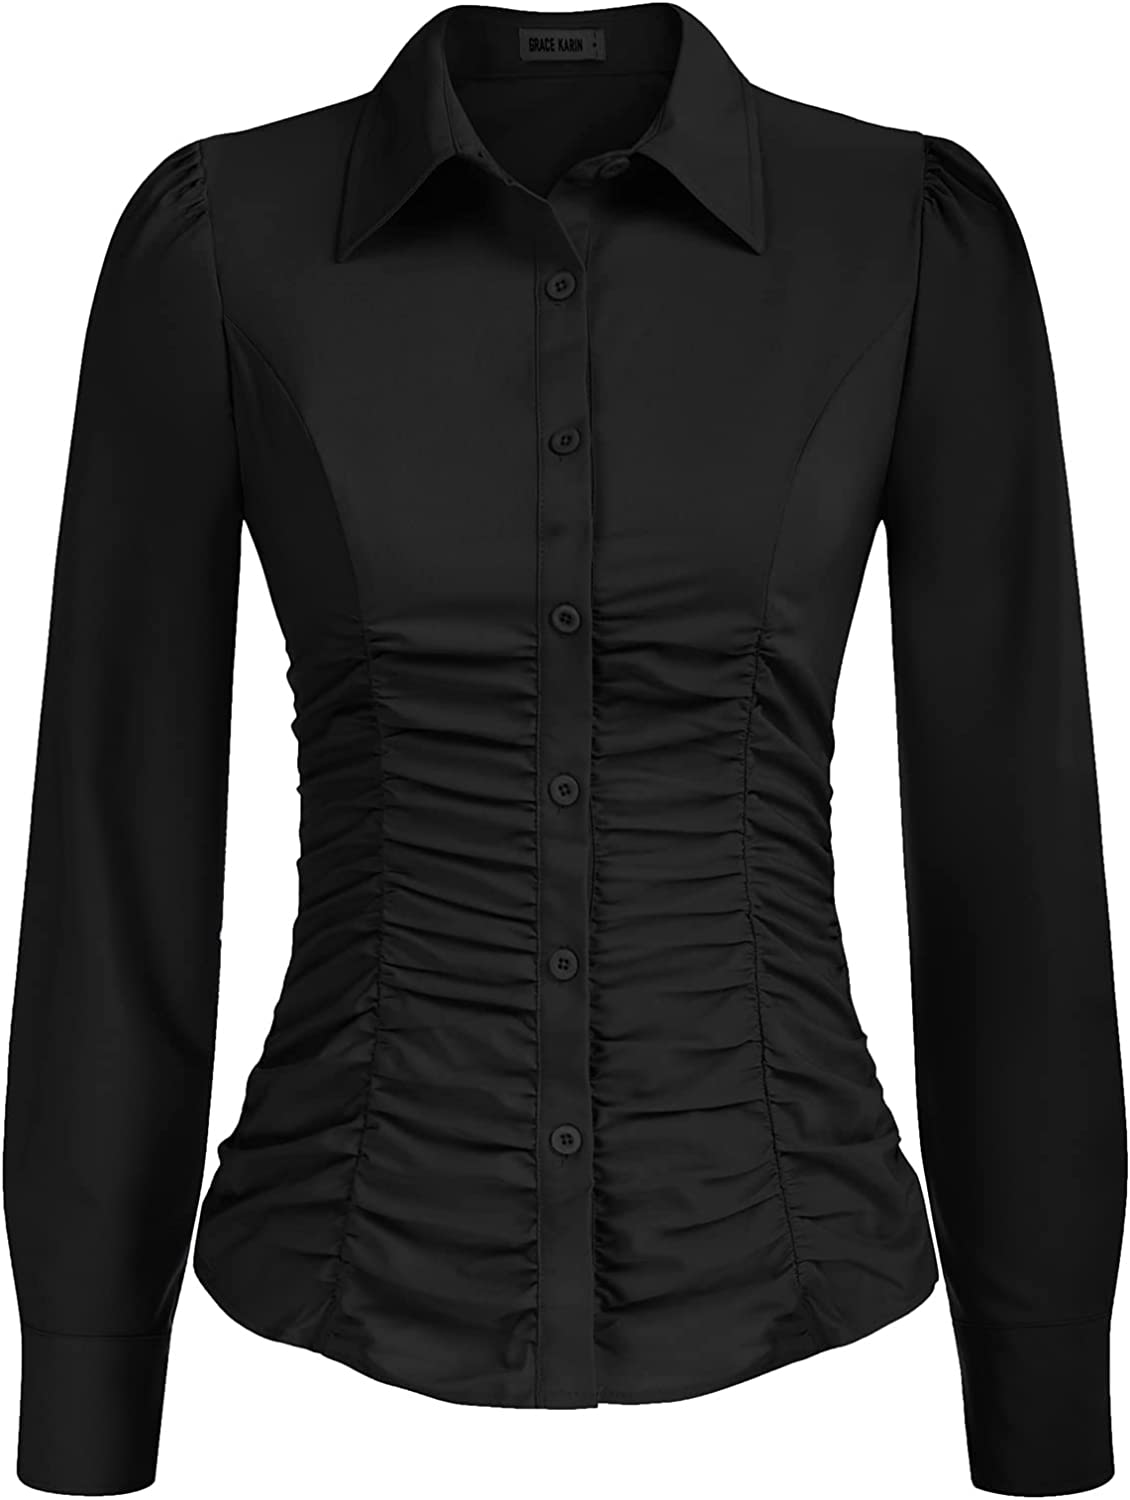 GRACE KARIN Women's Puff Long Sleeve Business Blouses Ruched Tops Button Down Shirt for Women Casual(S-2XL)